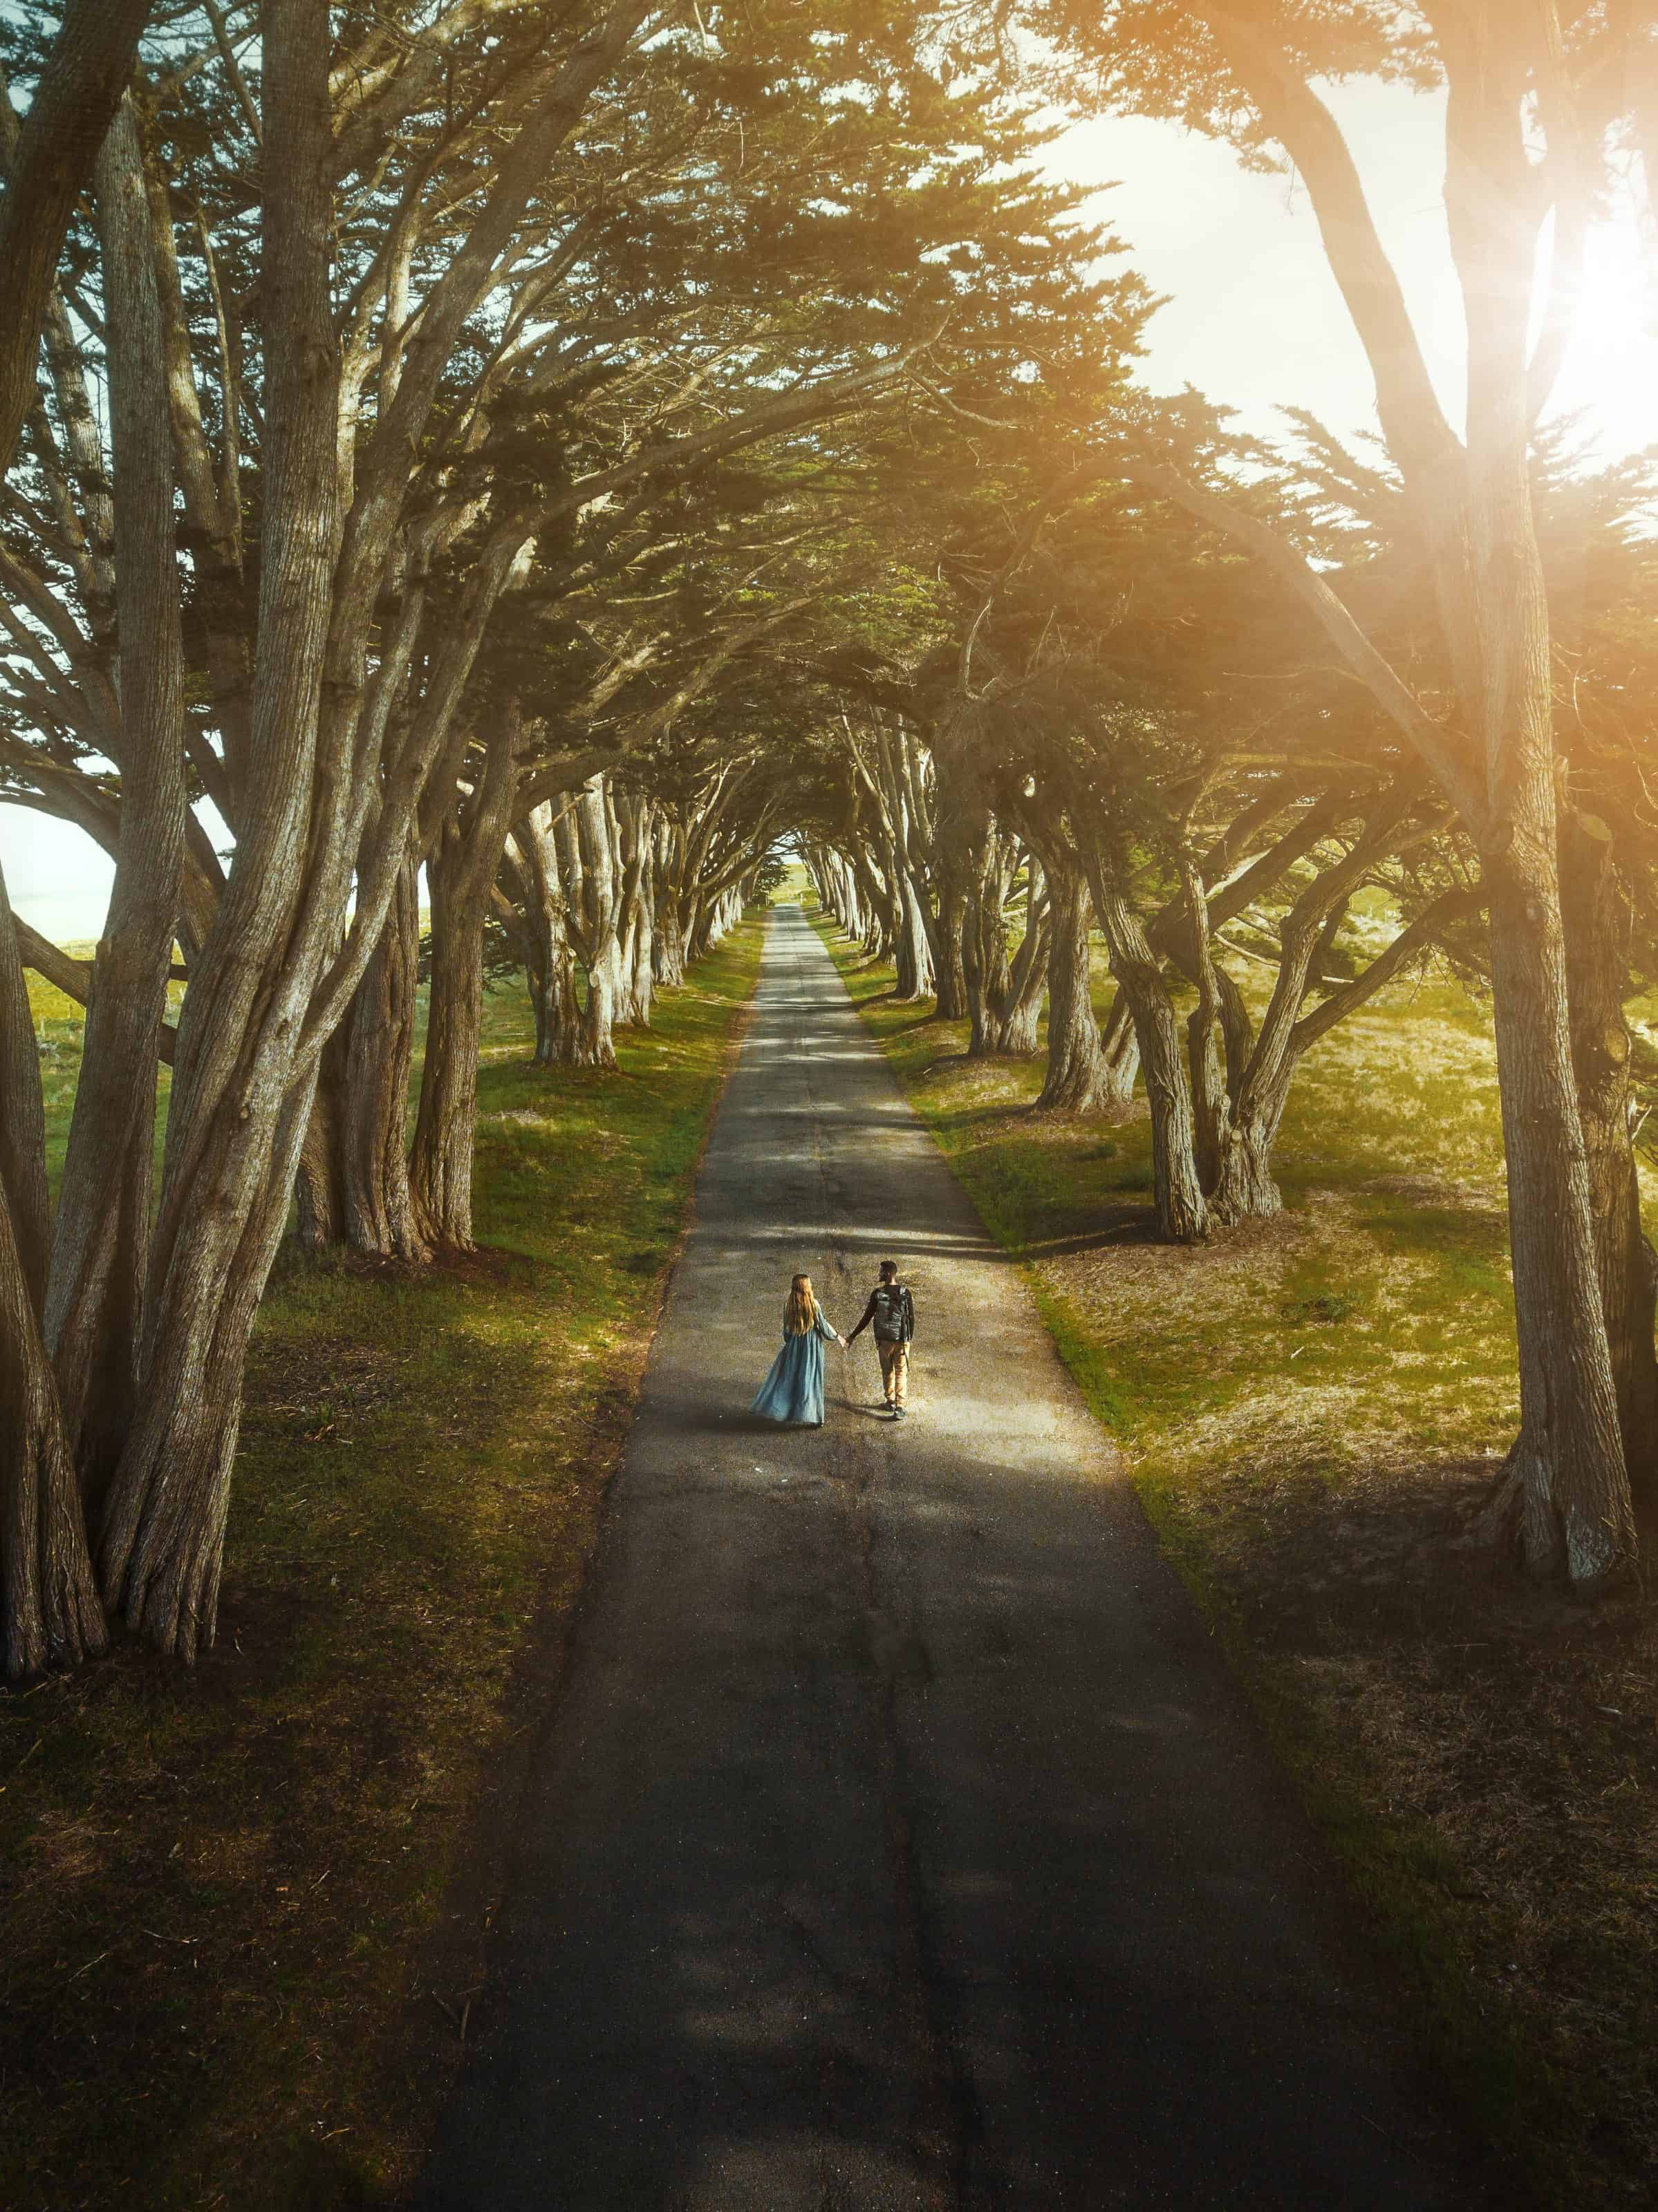 Cyprus Tree Tunnel In Point Reyes National Seashore is perfect for photography and sunset! #california #travel #weddingphotos #couples